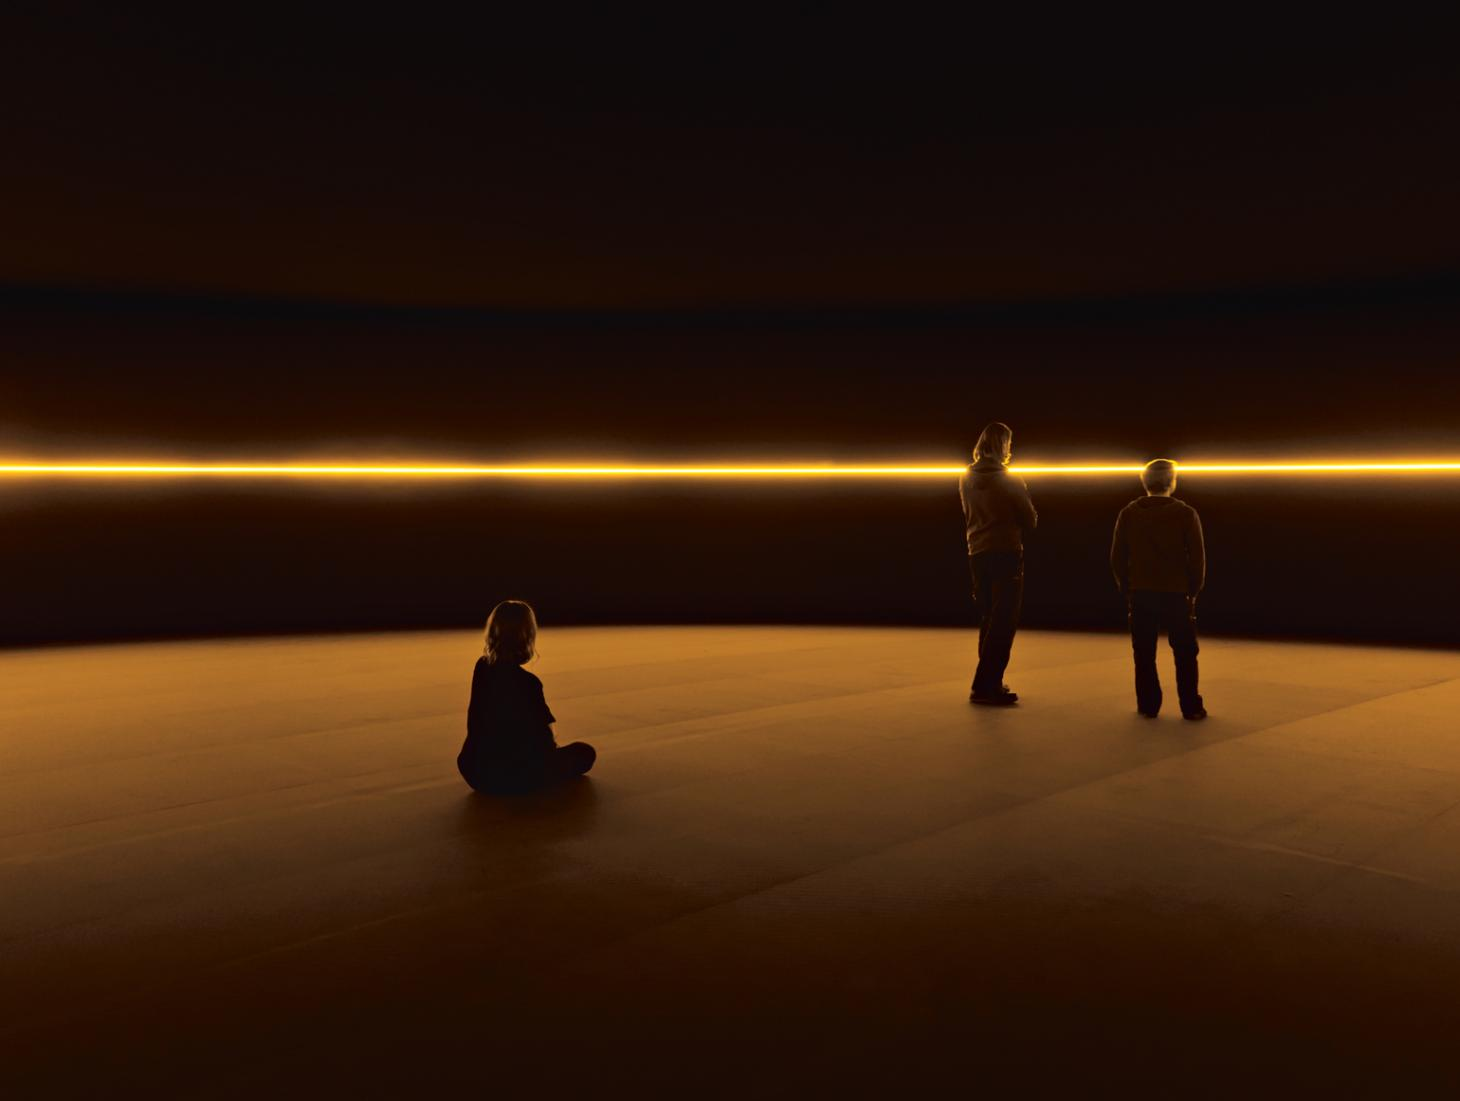 Olafur Eliasson, Experience, book published by Phaidon